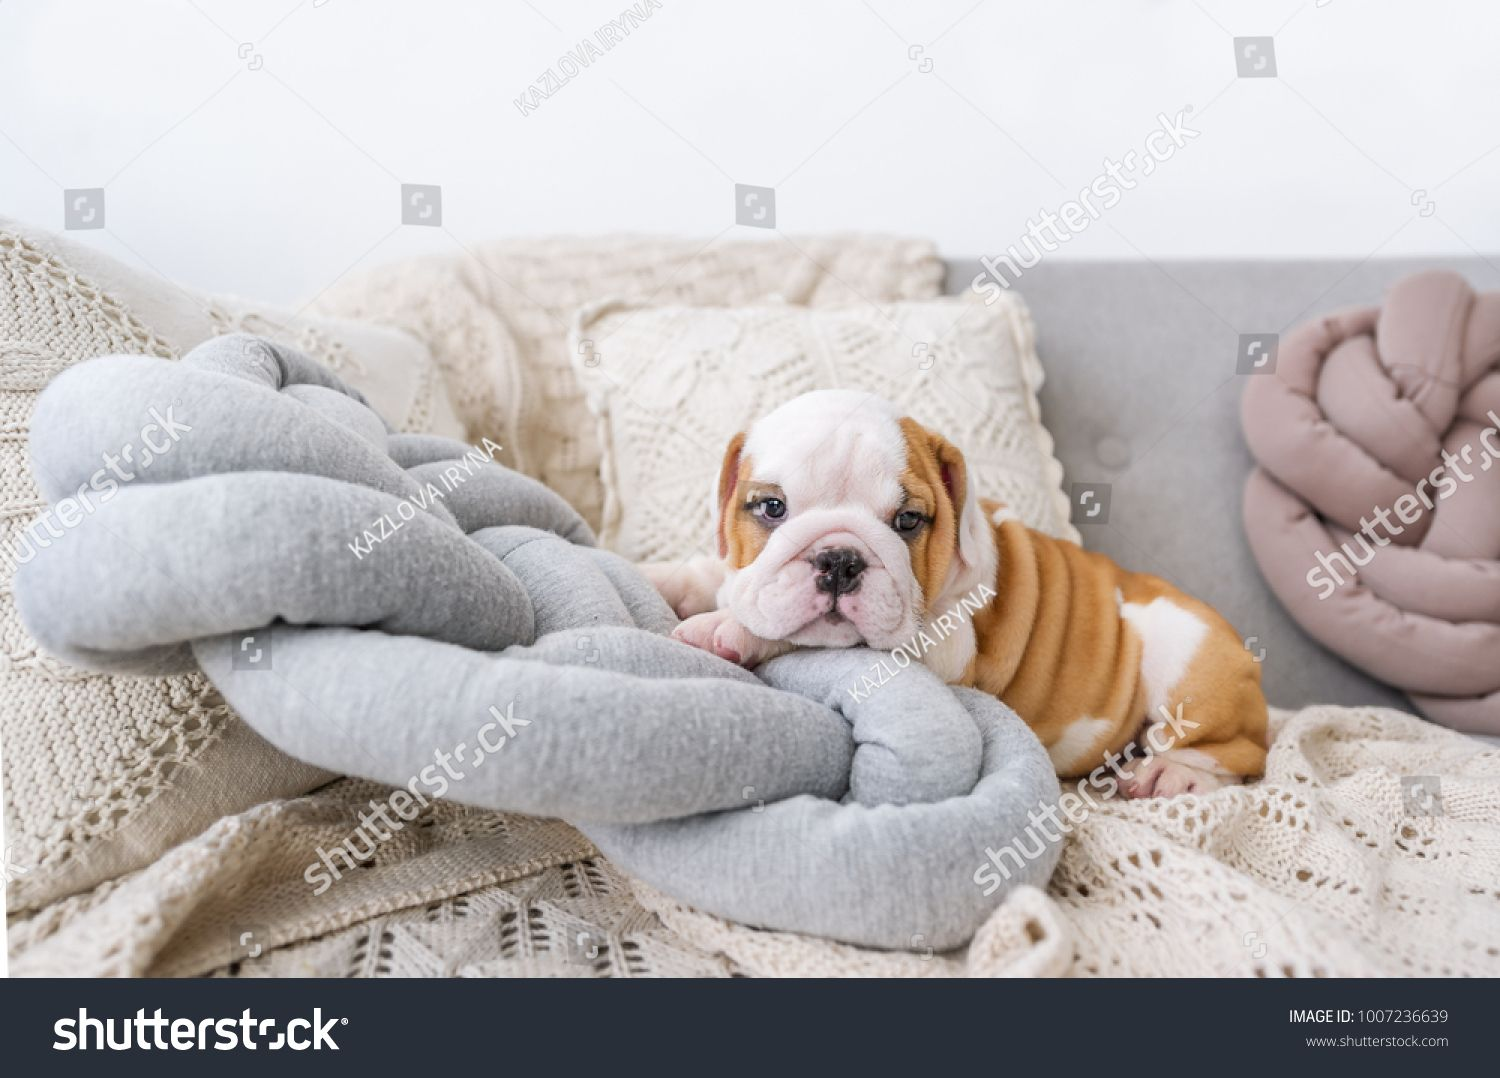 Puppy Of The English Bulldog Lies On White Pillows On A Sofa